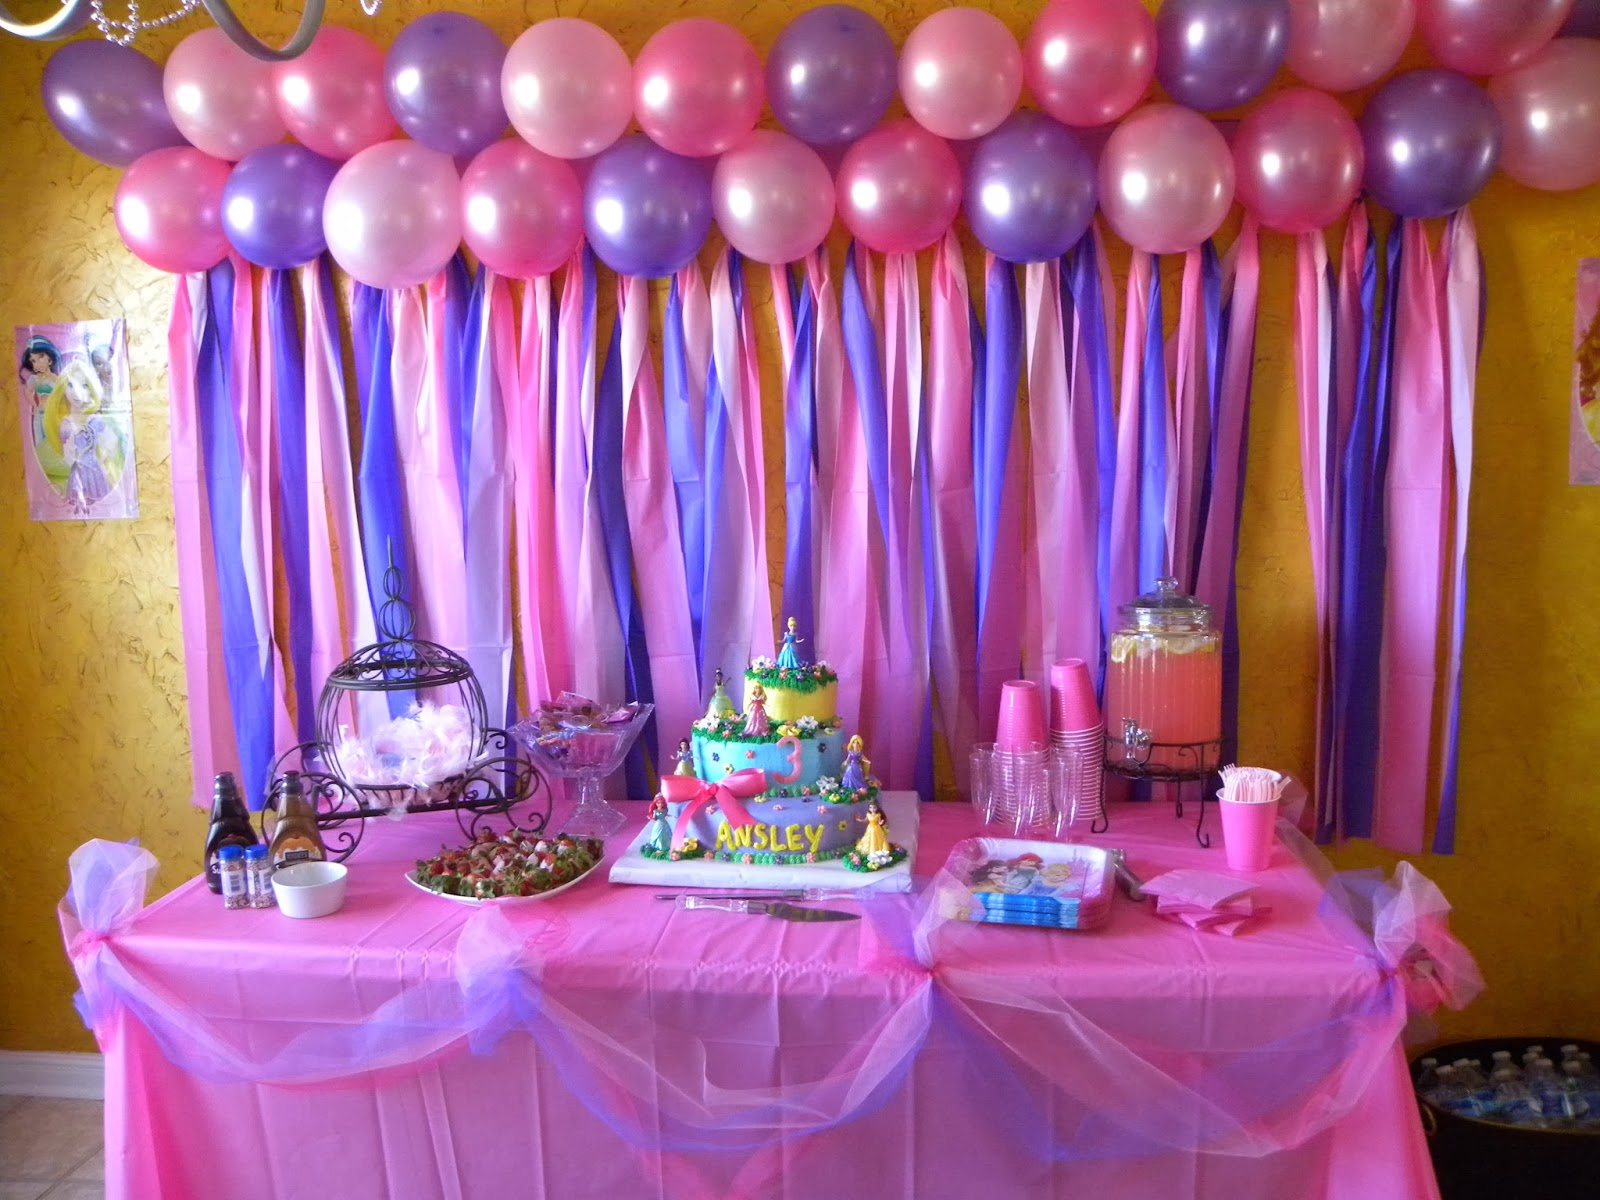 Birthday table decorations for girls - Partydecor Jpg 1 600 1 200 Pixels Wedding Pinterest Disney Tablecloths And Streamers